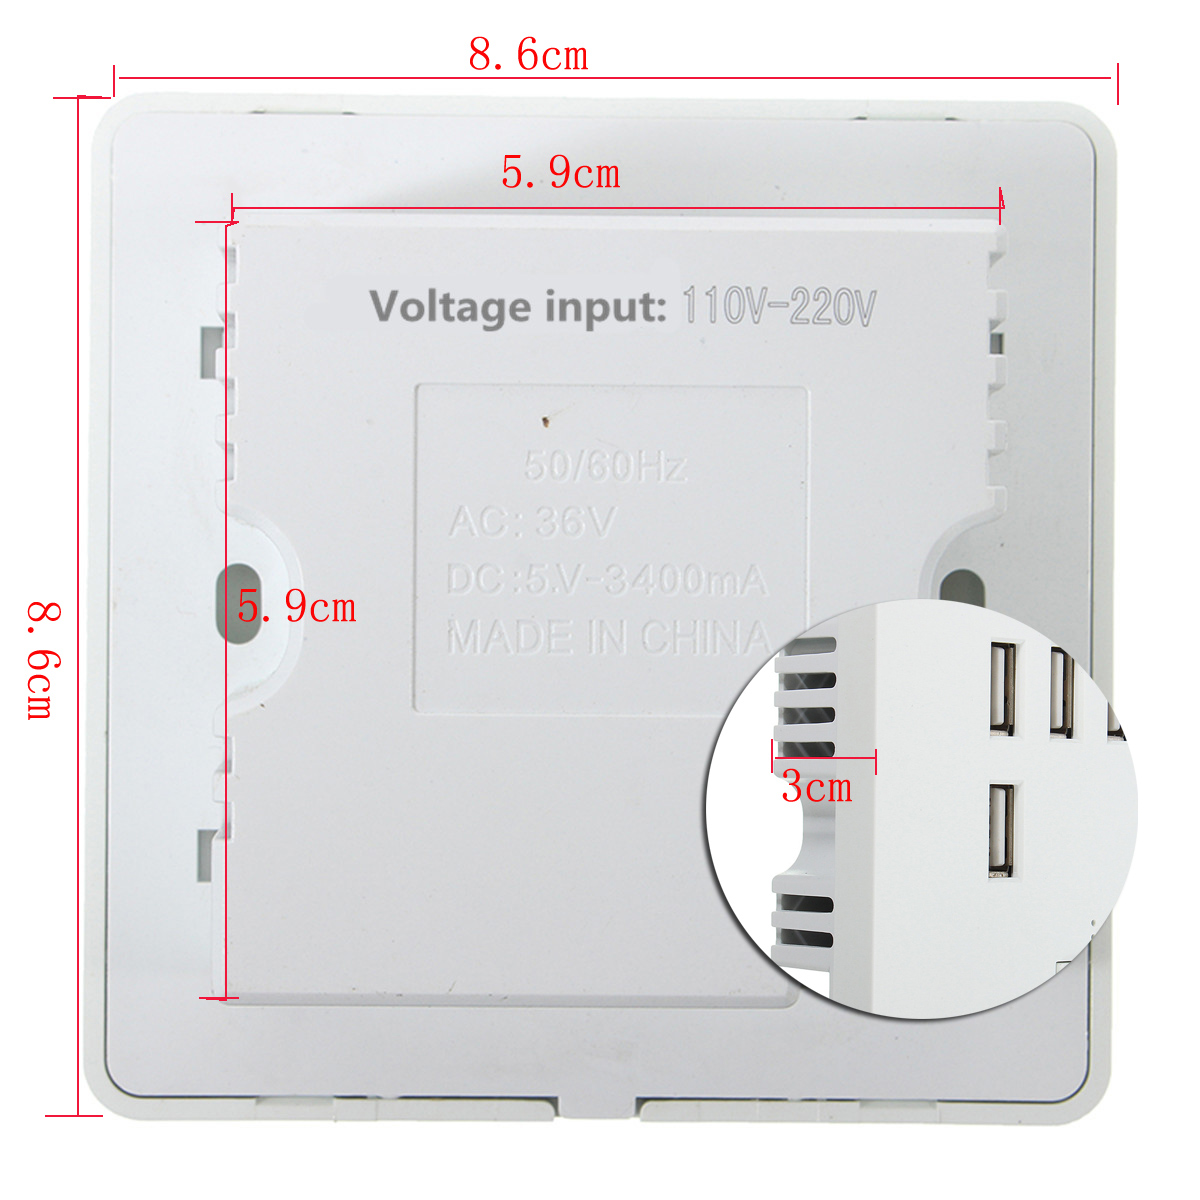 Excellway® 3.4A AC Power Wall Receptacle Socket Plate Charger Outlet Panel with 6 USB Port